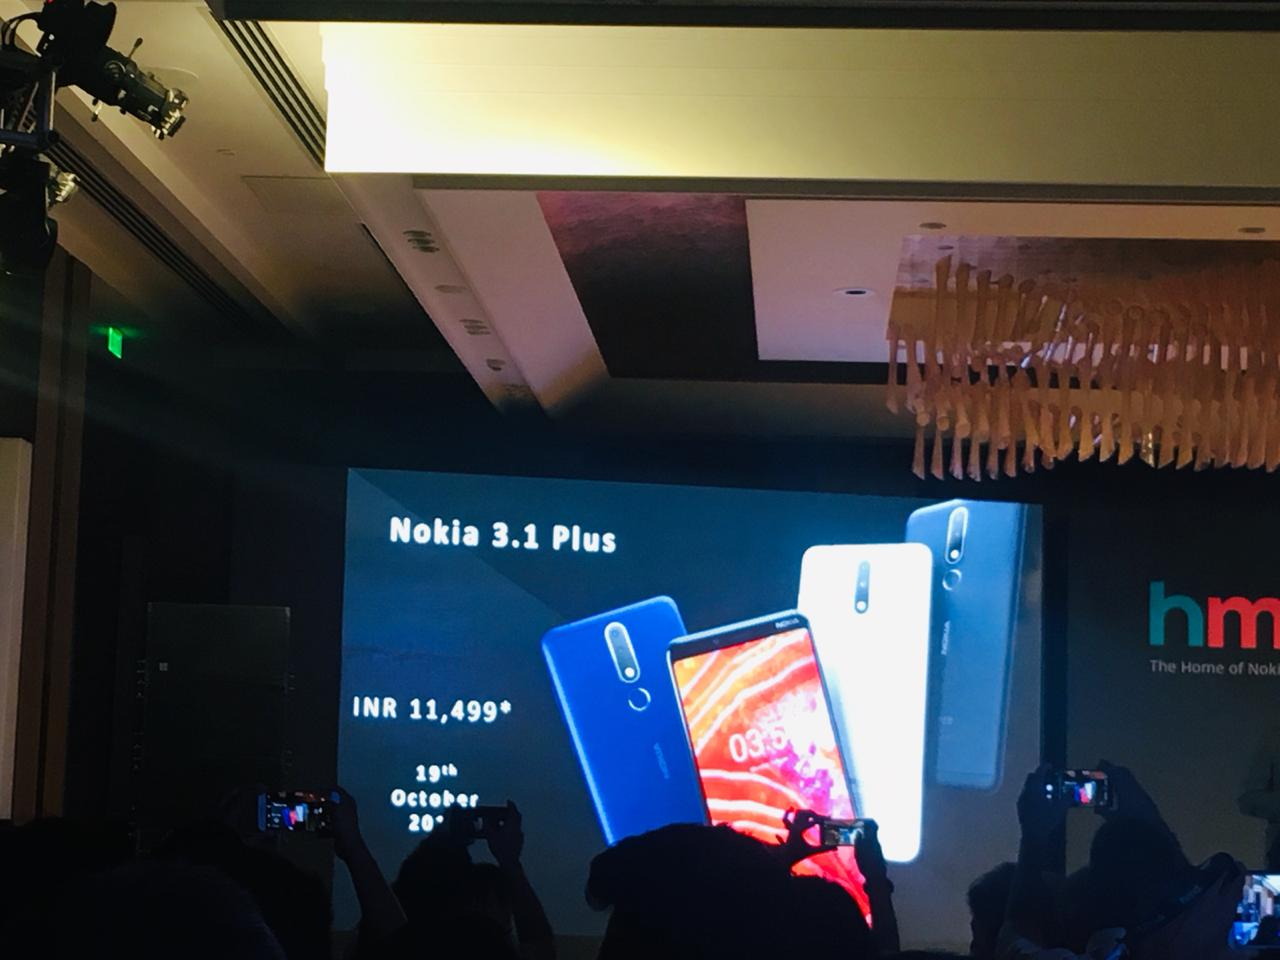 nokia 3.1 plus price in india and offers